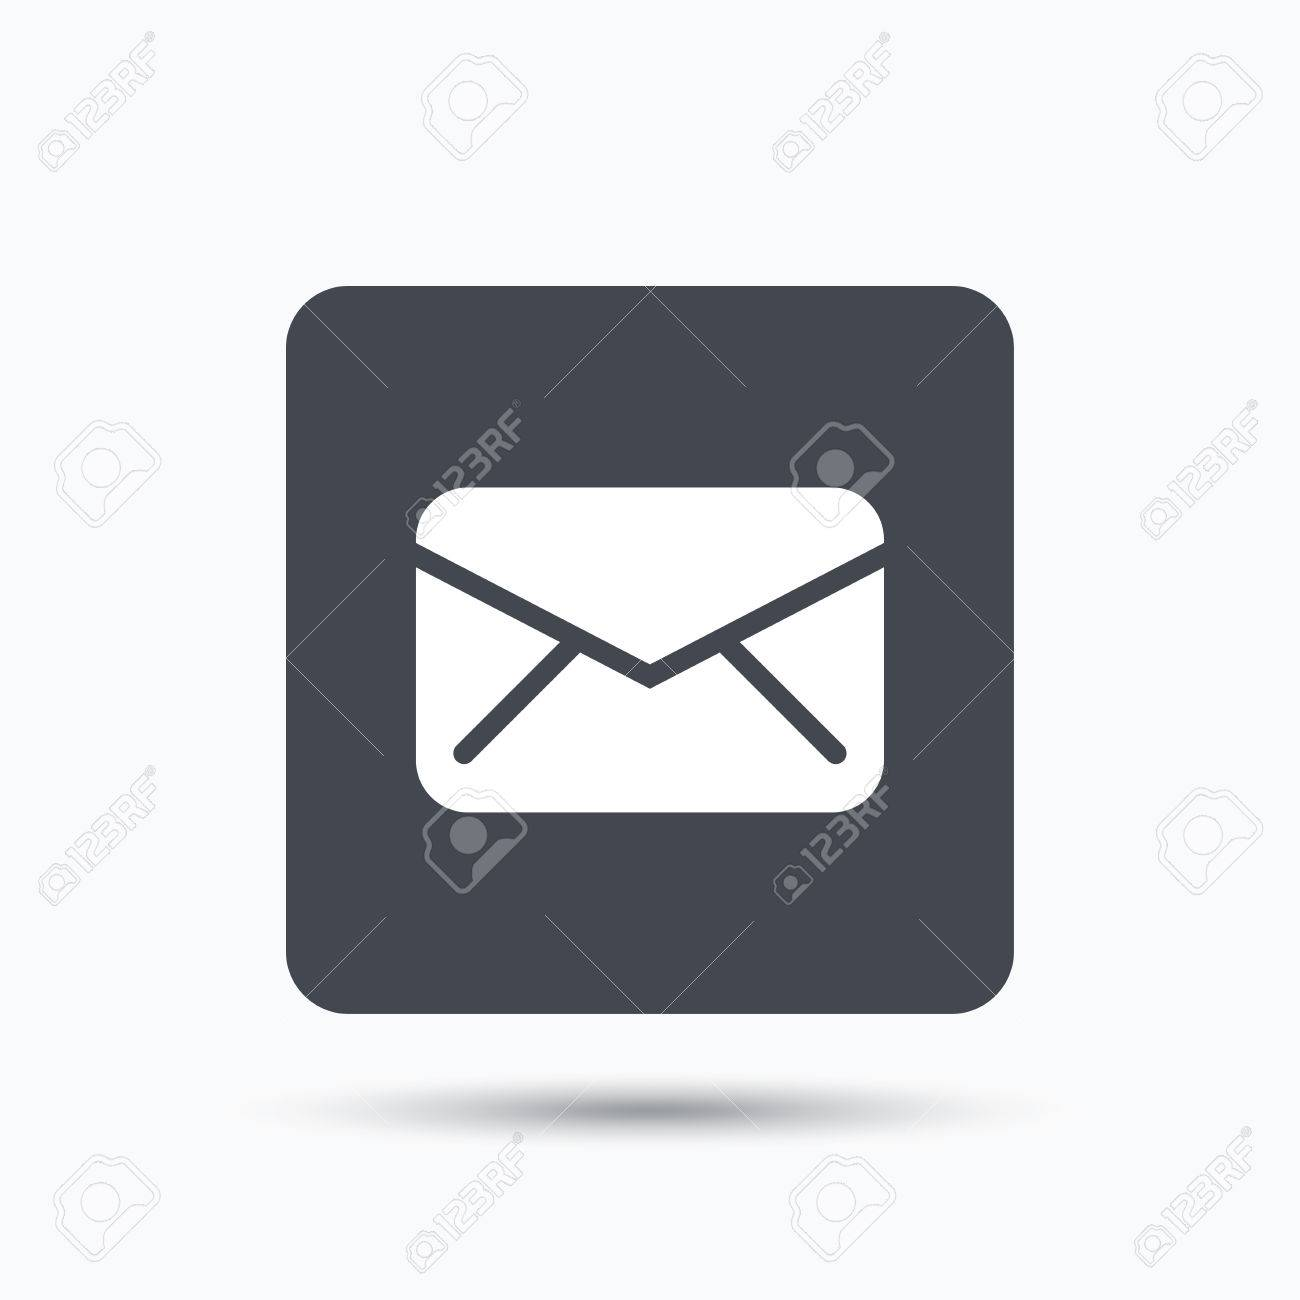 Send email message sign. Internet mailing symbol. Gray square button with